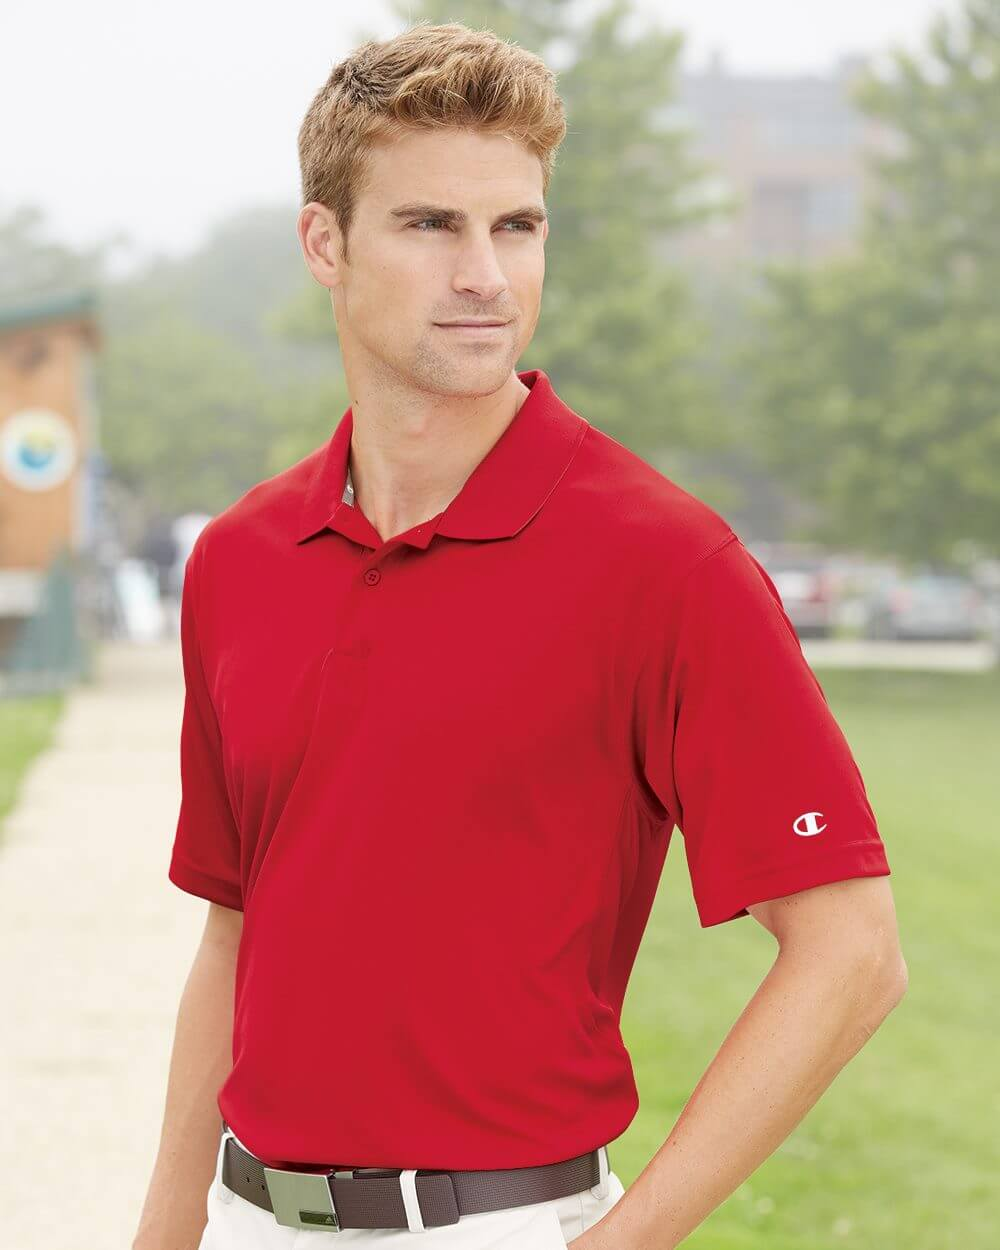 High Tech T-Shirts and Polos for Working Outdoors